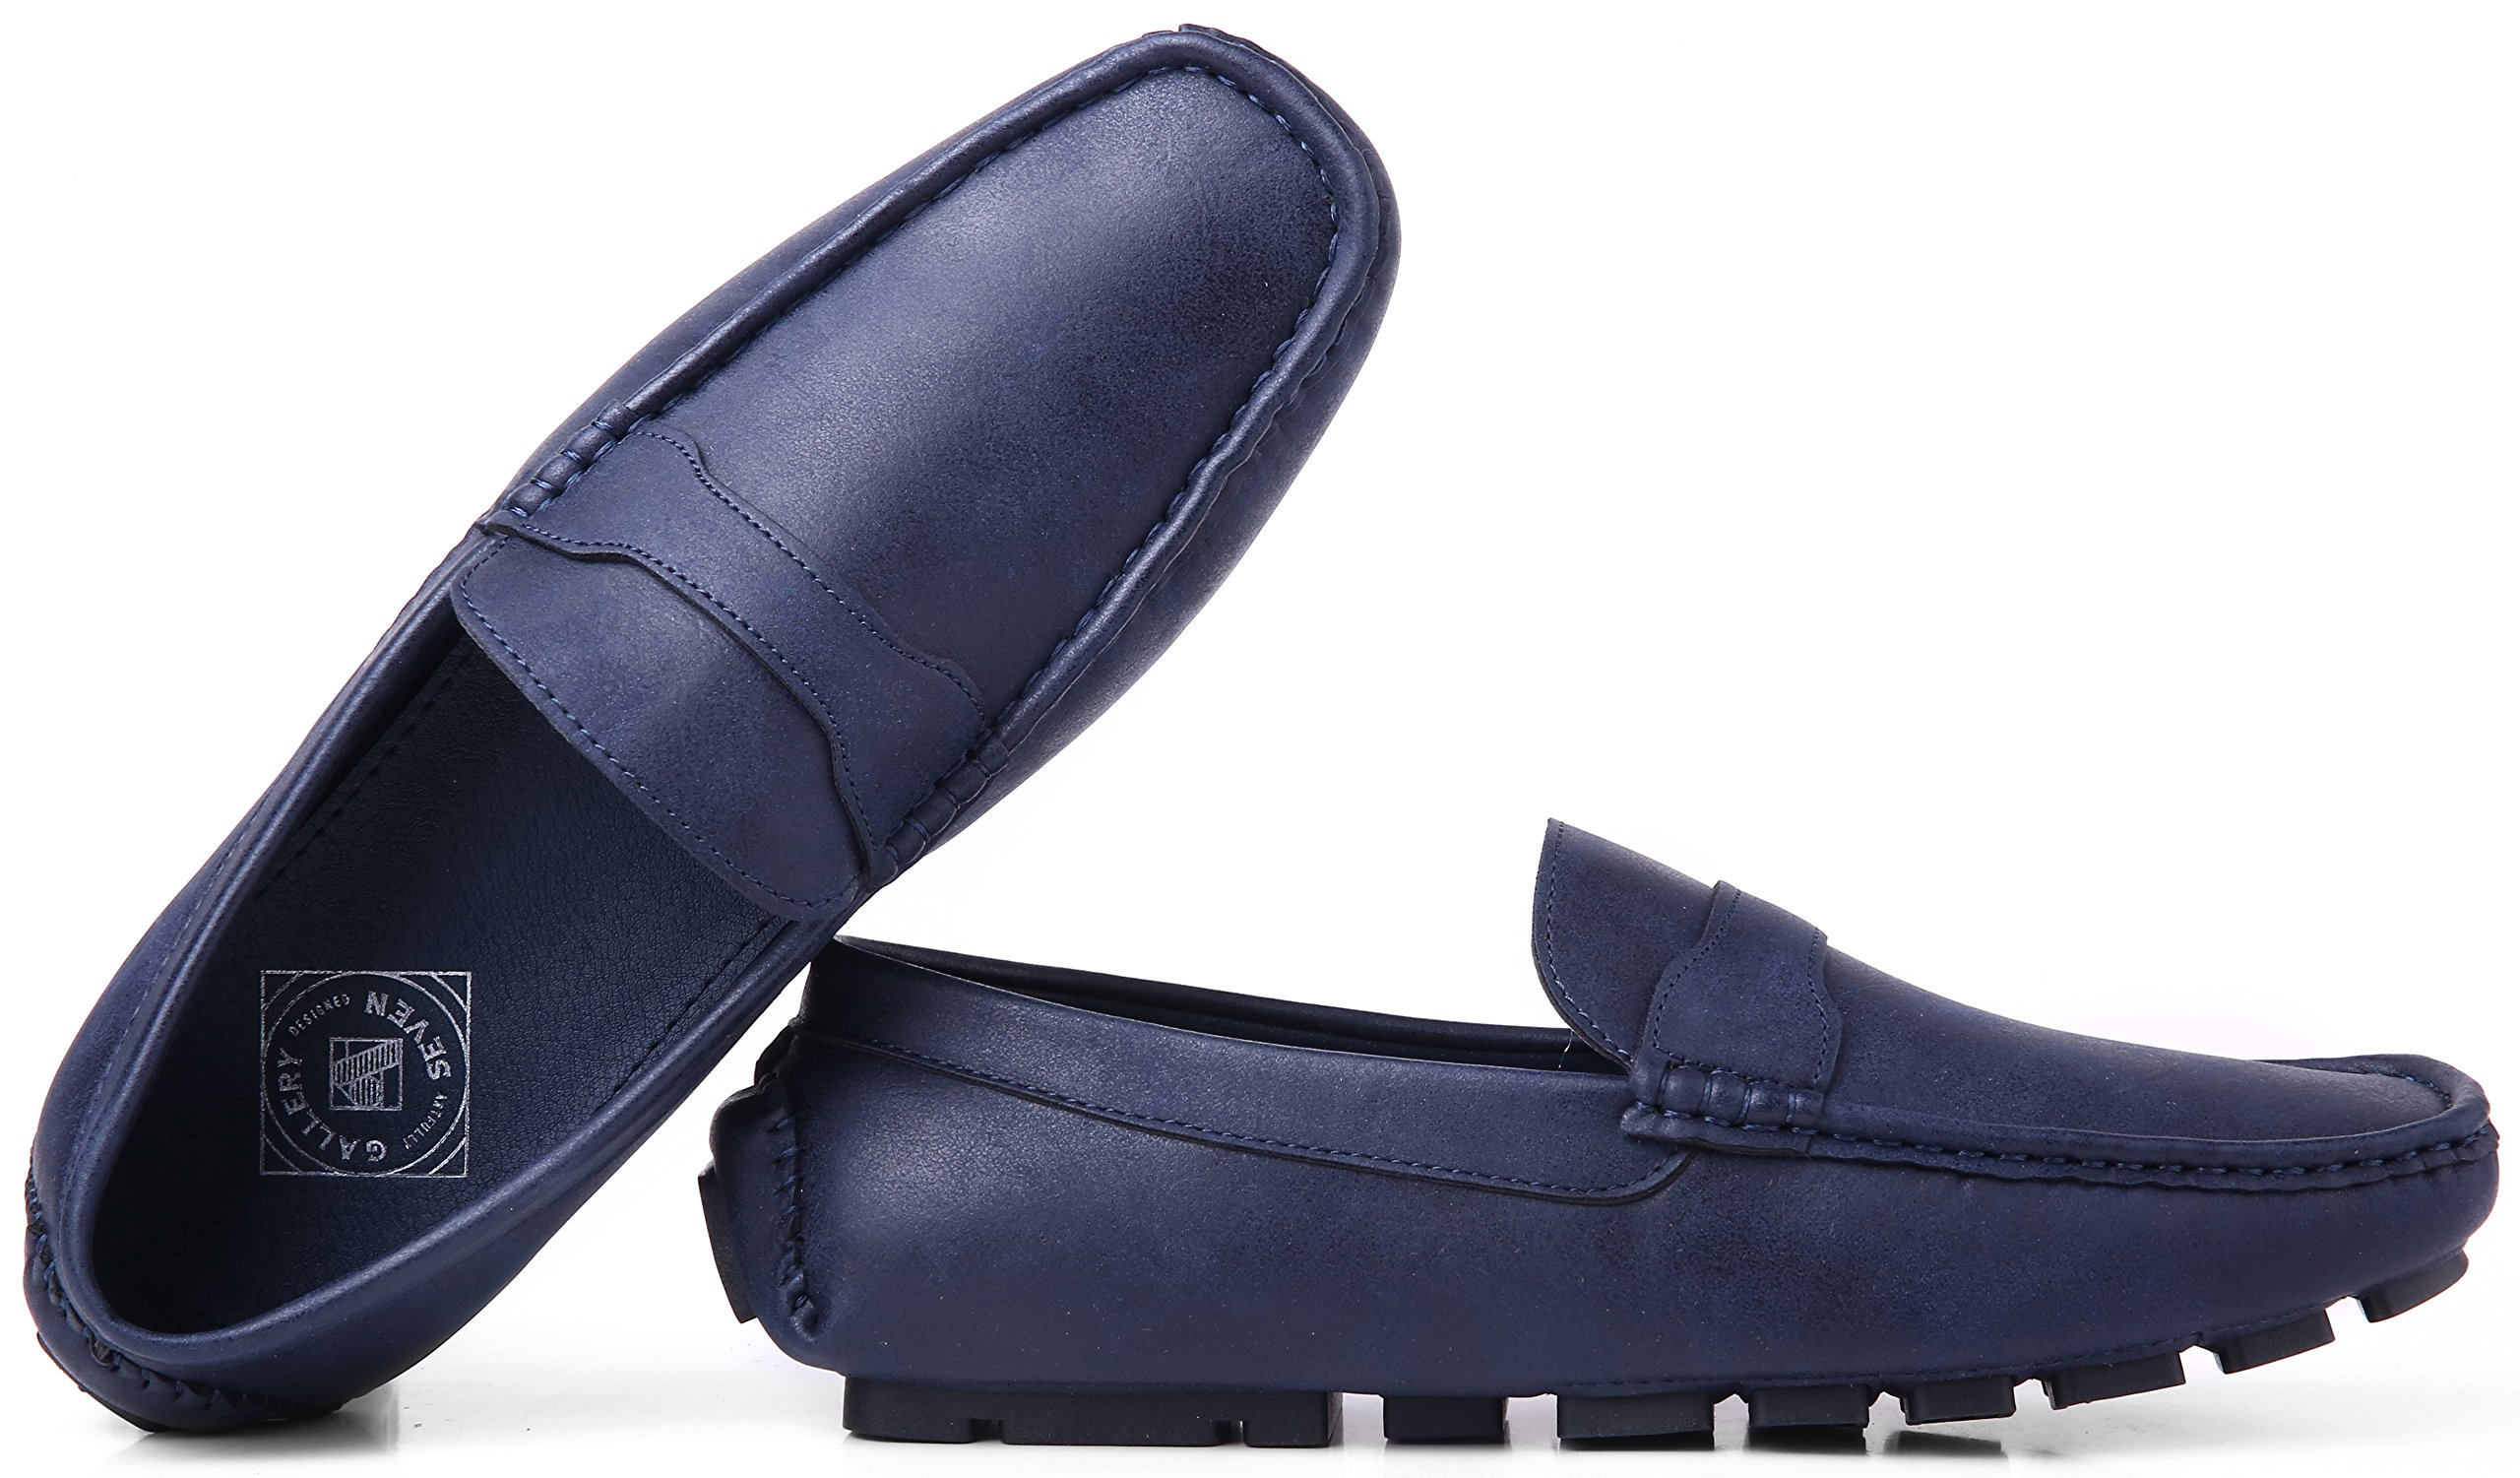 Gallery Seven Driving Shoes for Men - Casual Moccasin Loafers - Steel Blue - US-12D(M)|UK-11.5|EU-45